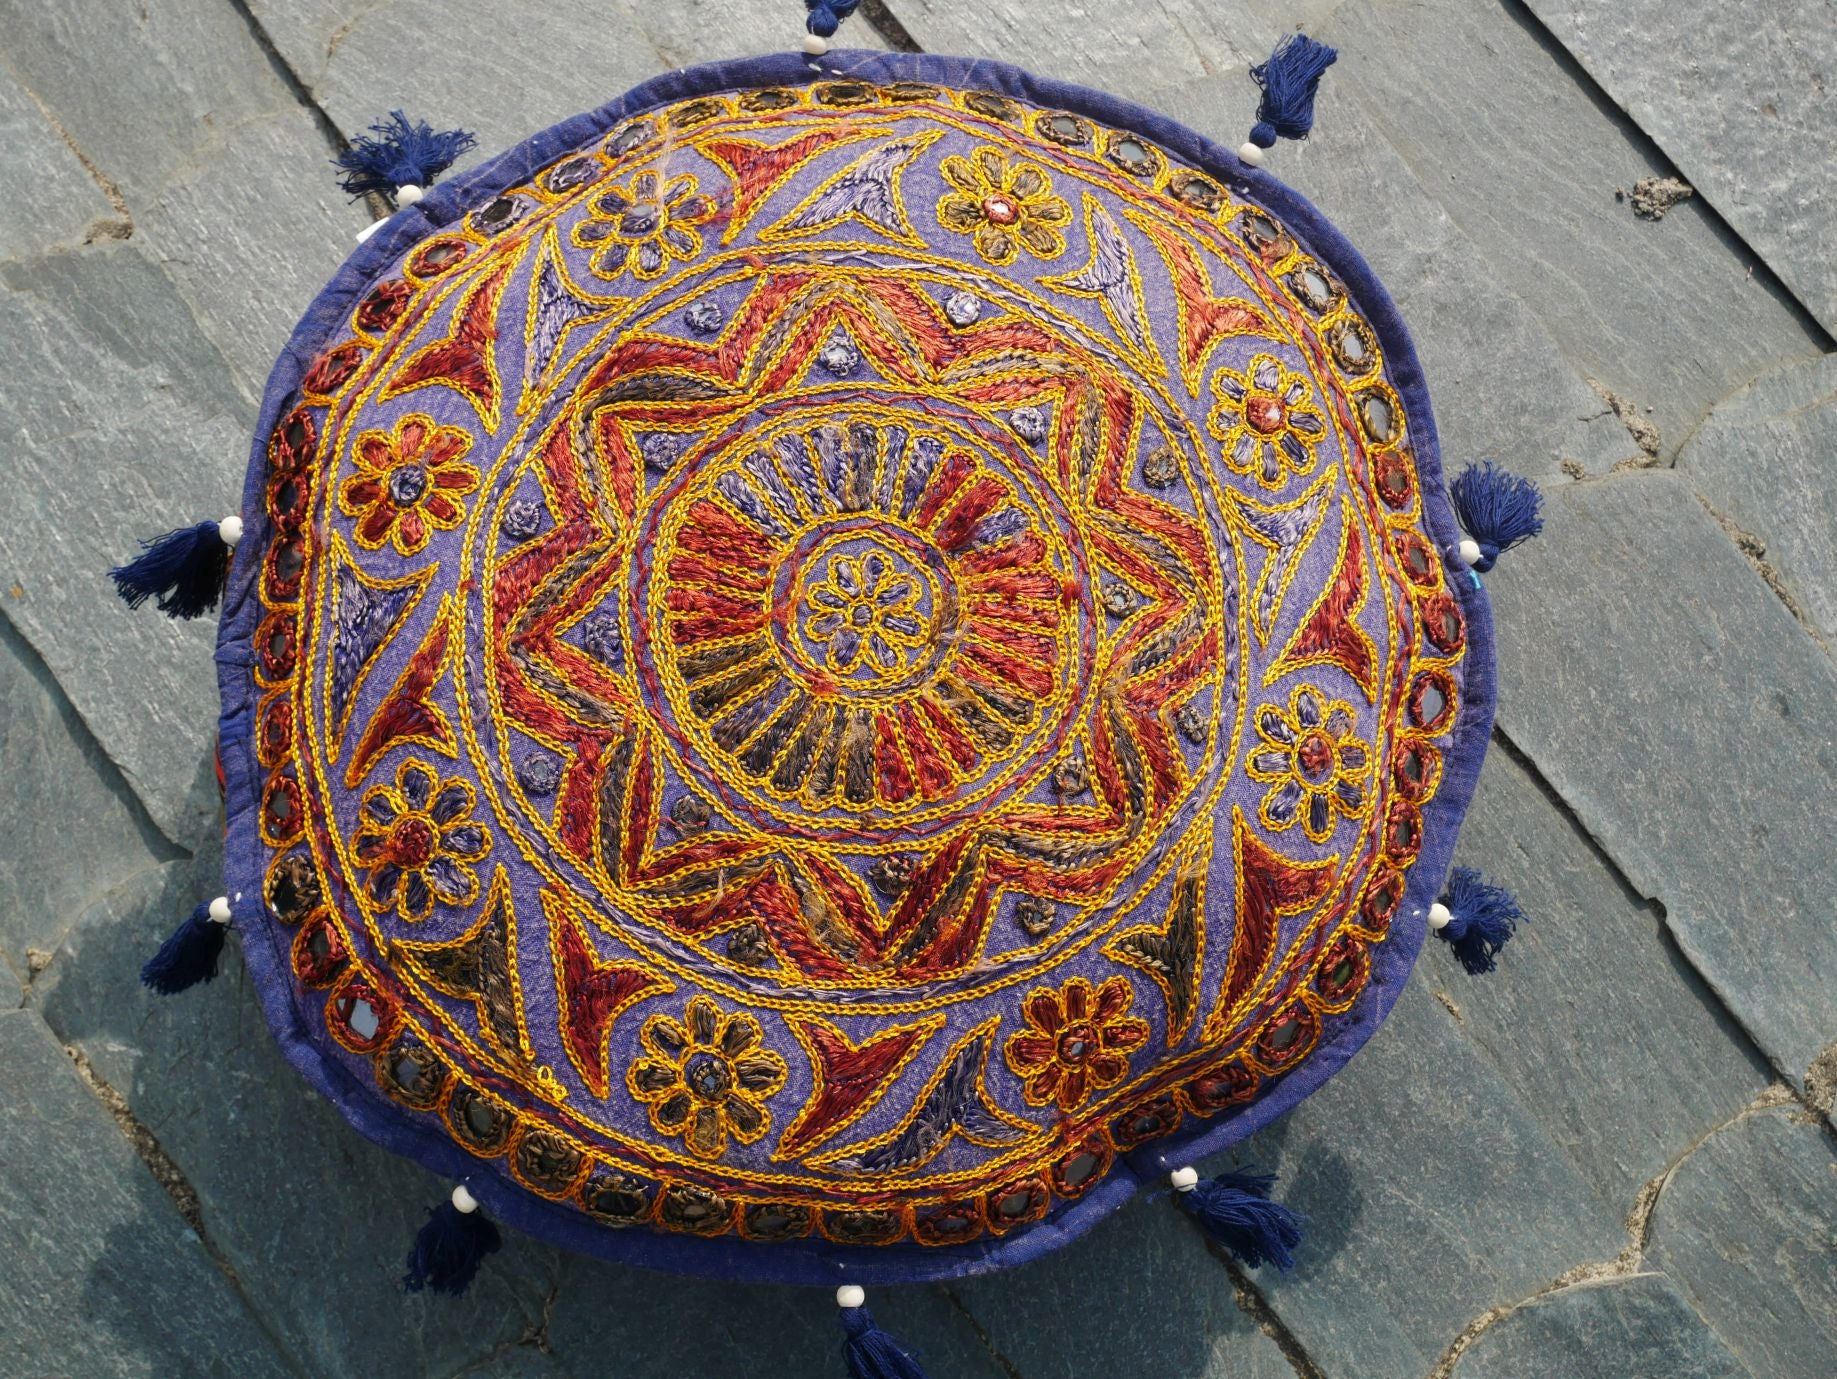 Meditation cushion - round floor cushion cover - embroidered cushion - boho floor pillow - Mandala